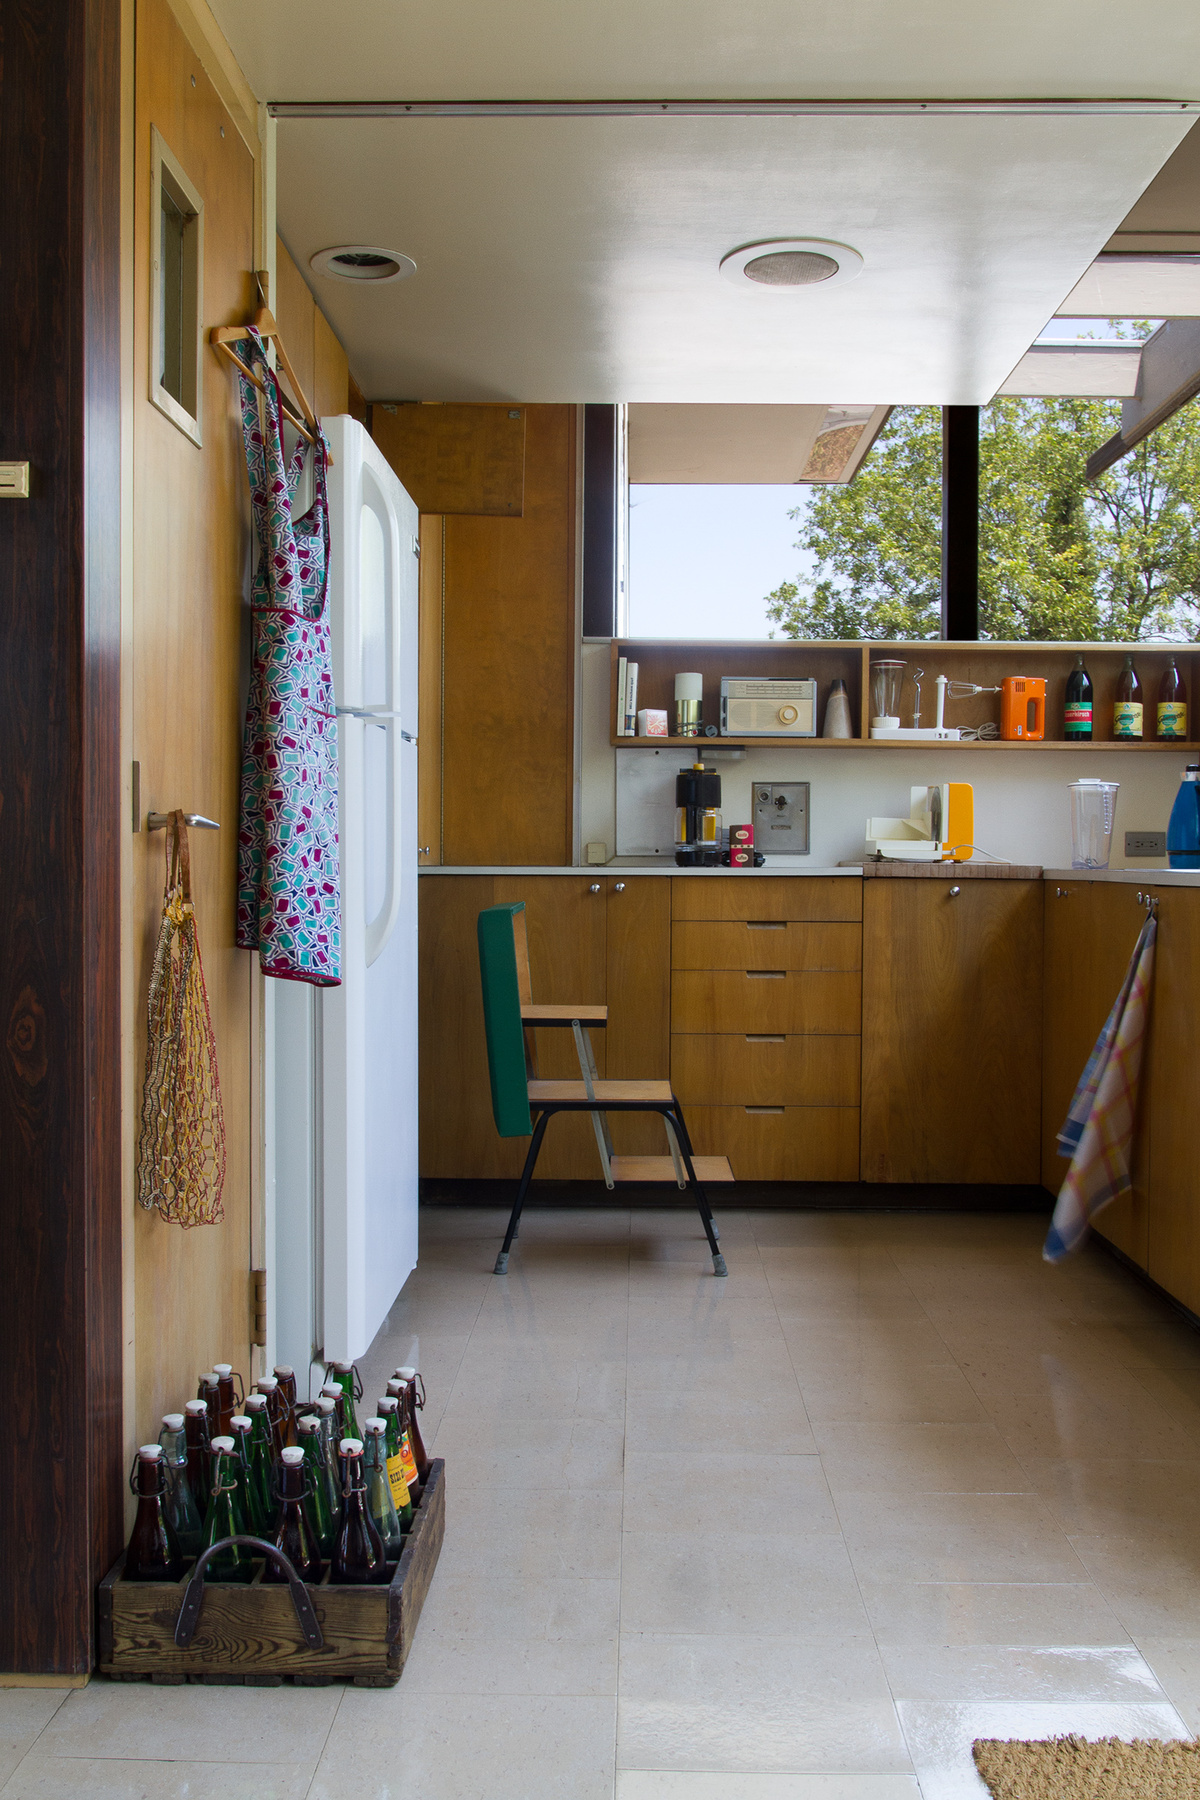 The VDL's kitchen in